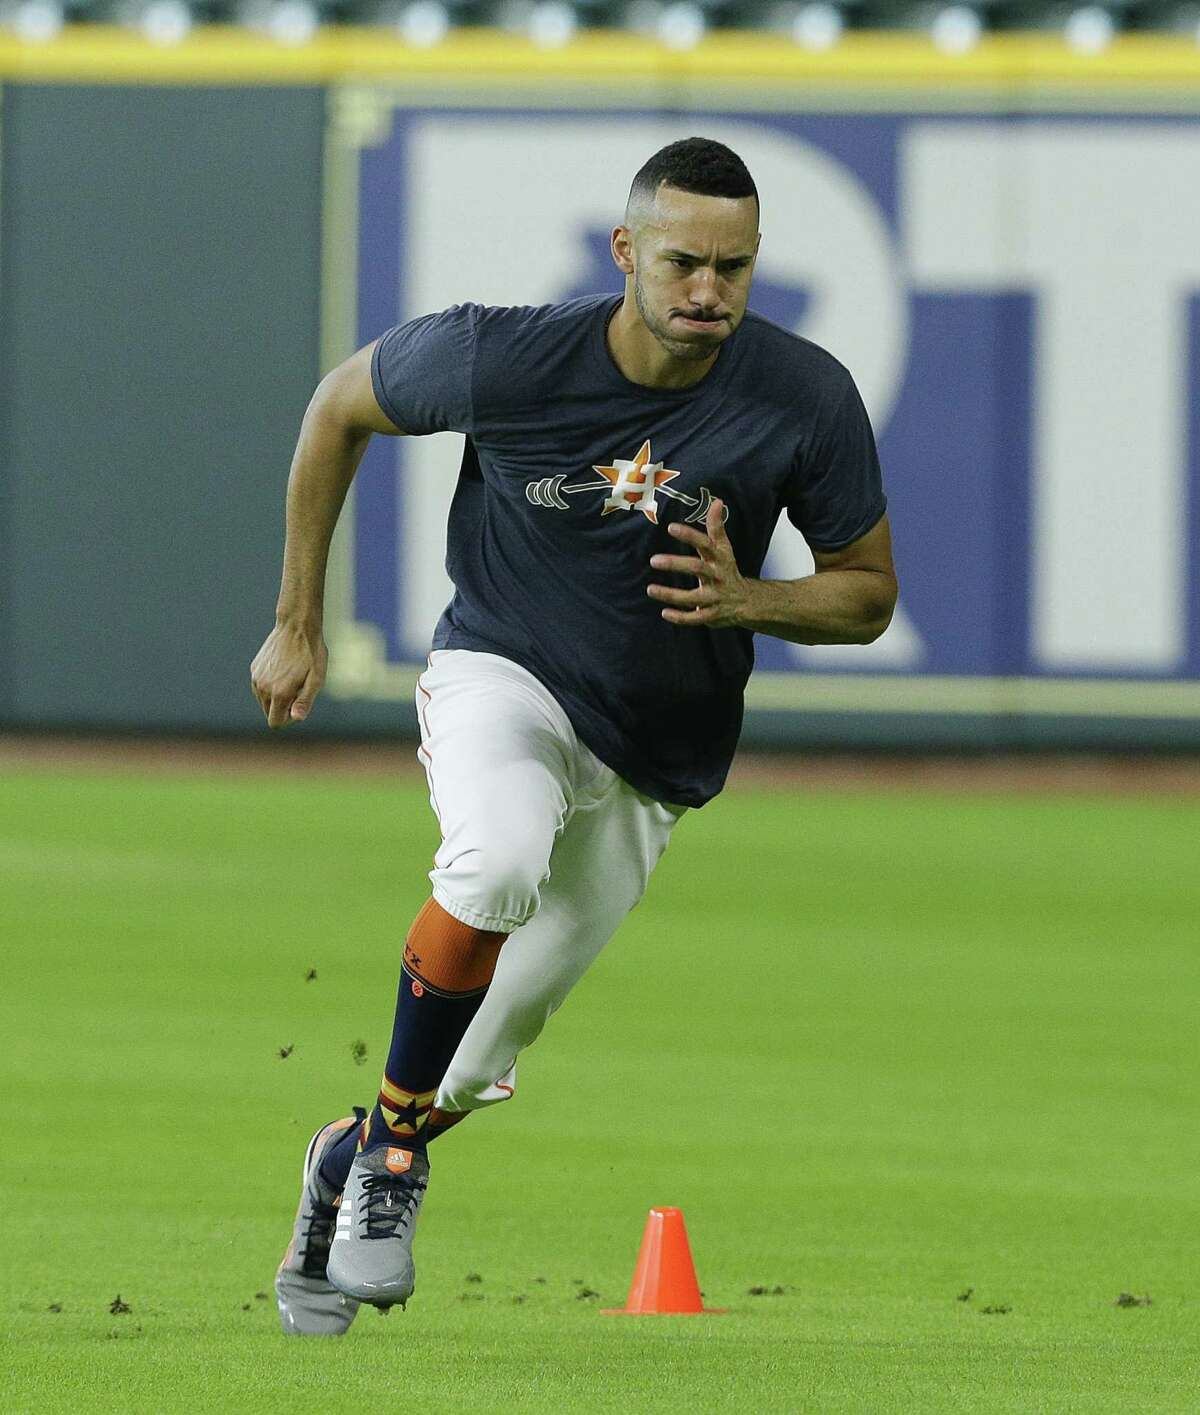 HOUSTON, TX - JULY 27: Carlos Correa #1 of the Houston Astros goes through drills at Minute Maid Park on July 27, 2018 in Houston, Texas. Correa has been on the disabled list with a sore back.